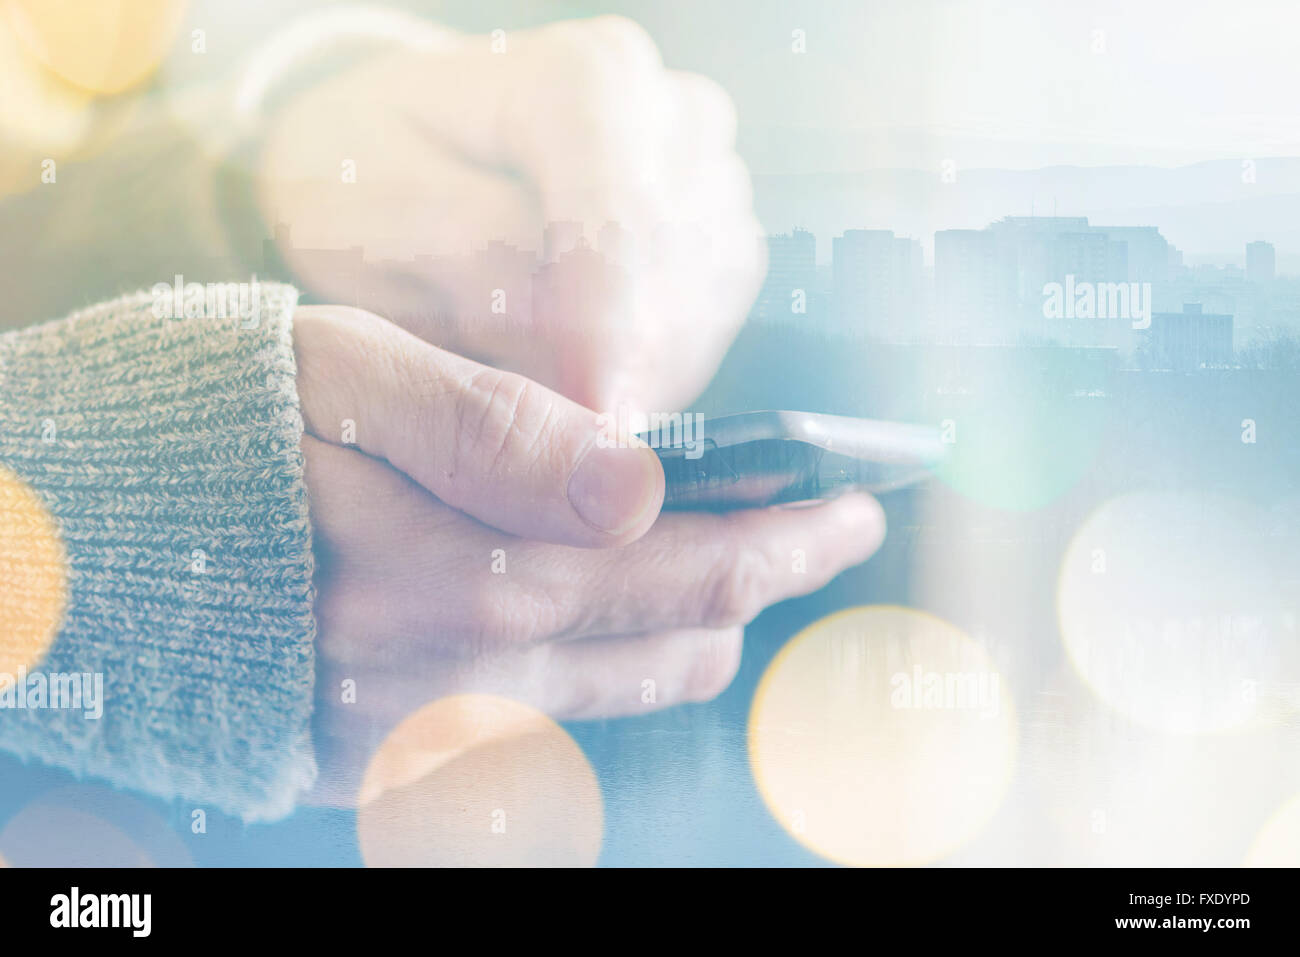 Man sending text message on smartphone, morning sunlight through the window, male hands using mobile phone device - Stock Image